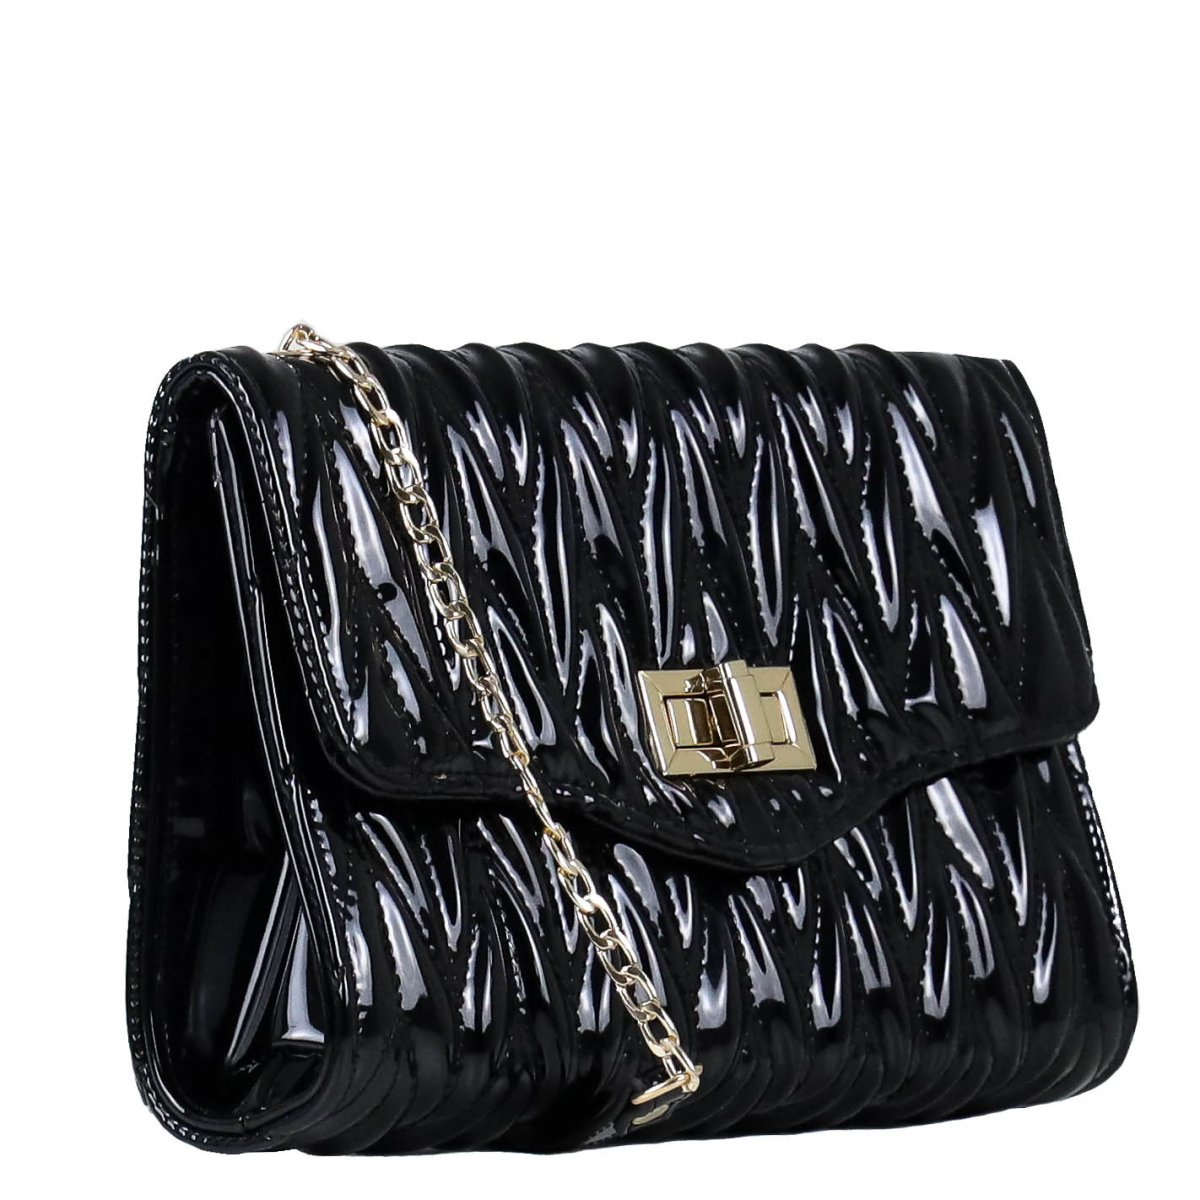 Bolsa Zariff Shoes Clutch Matelassê Preto